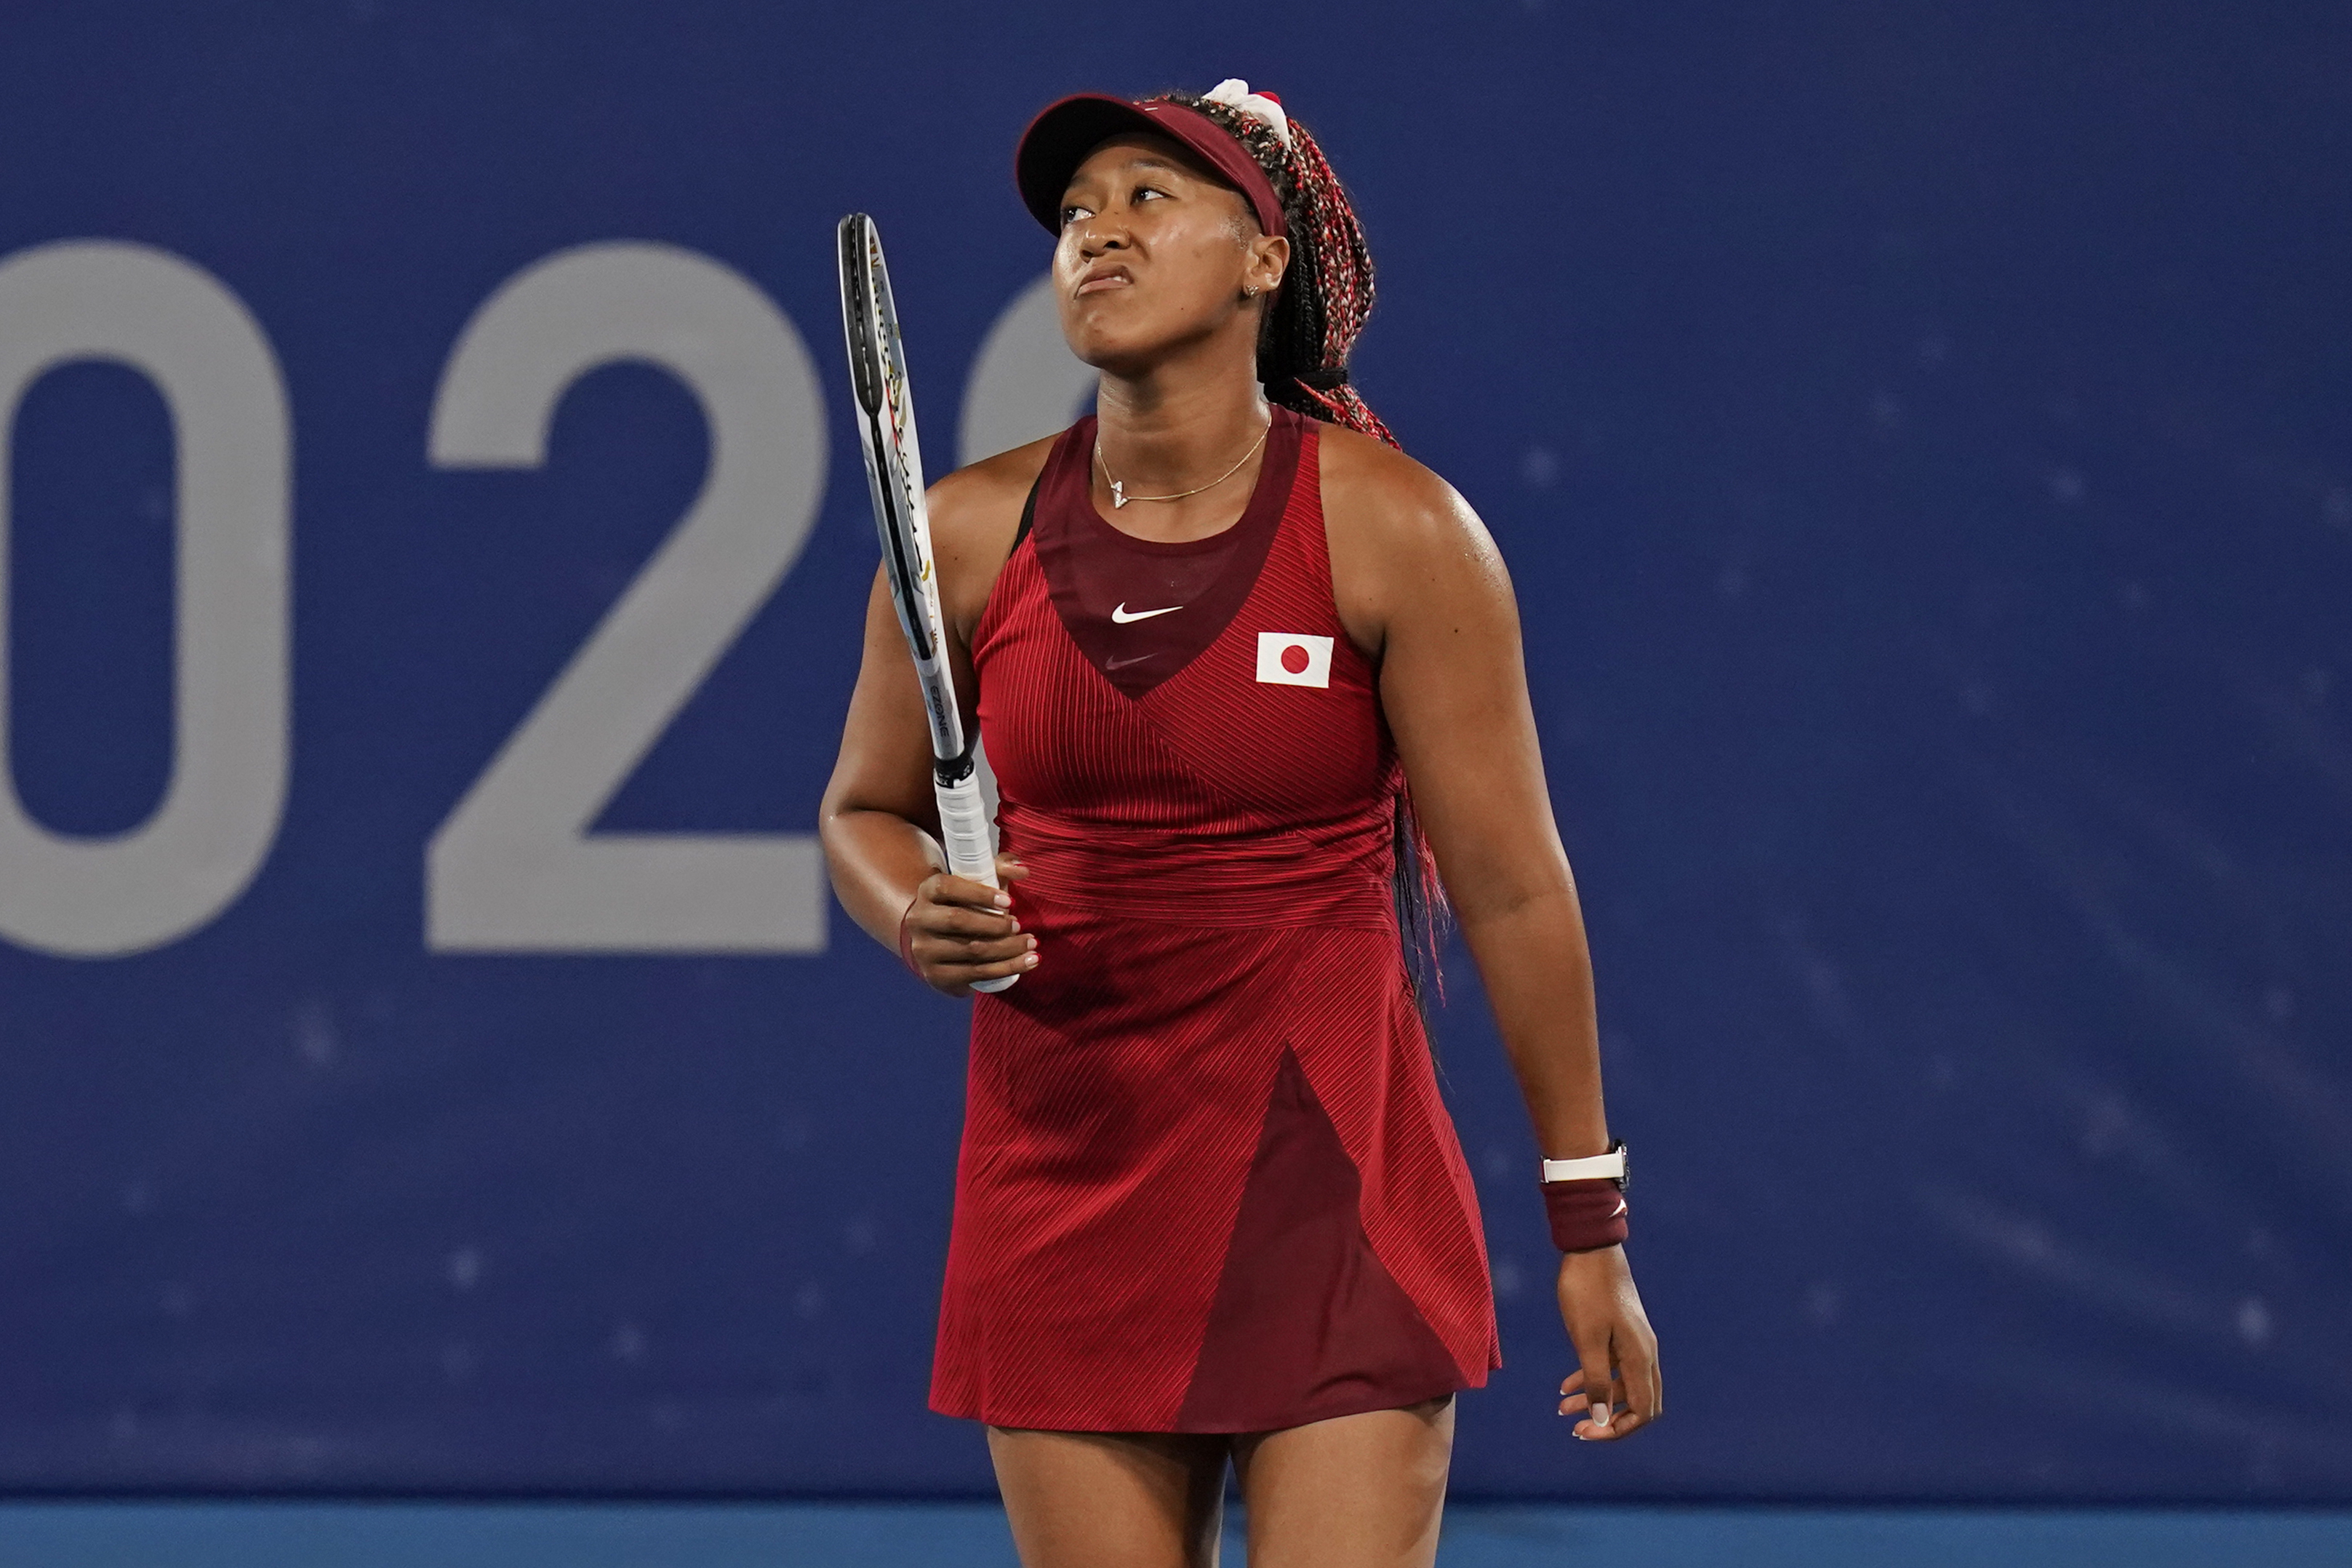 Naomi Osaka Out Of Tokyo Olympics After Shocking 3rd Round Loss